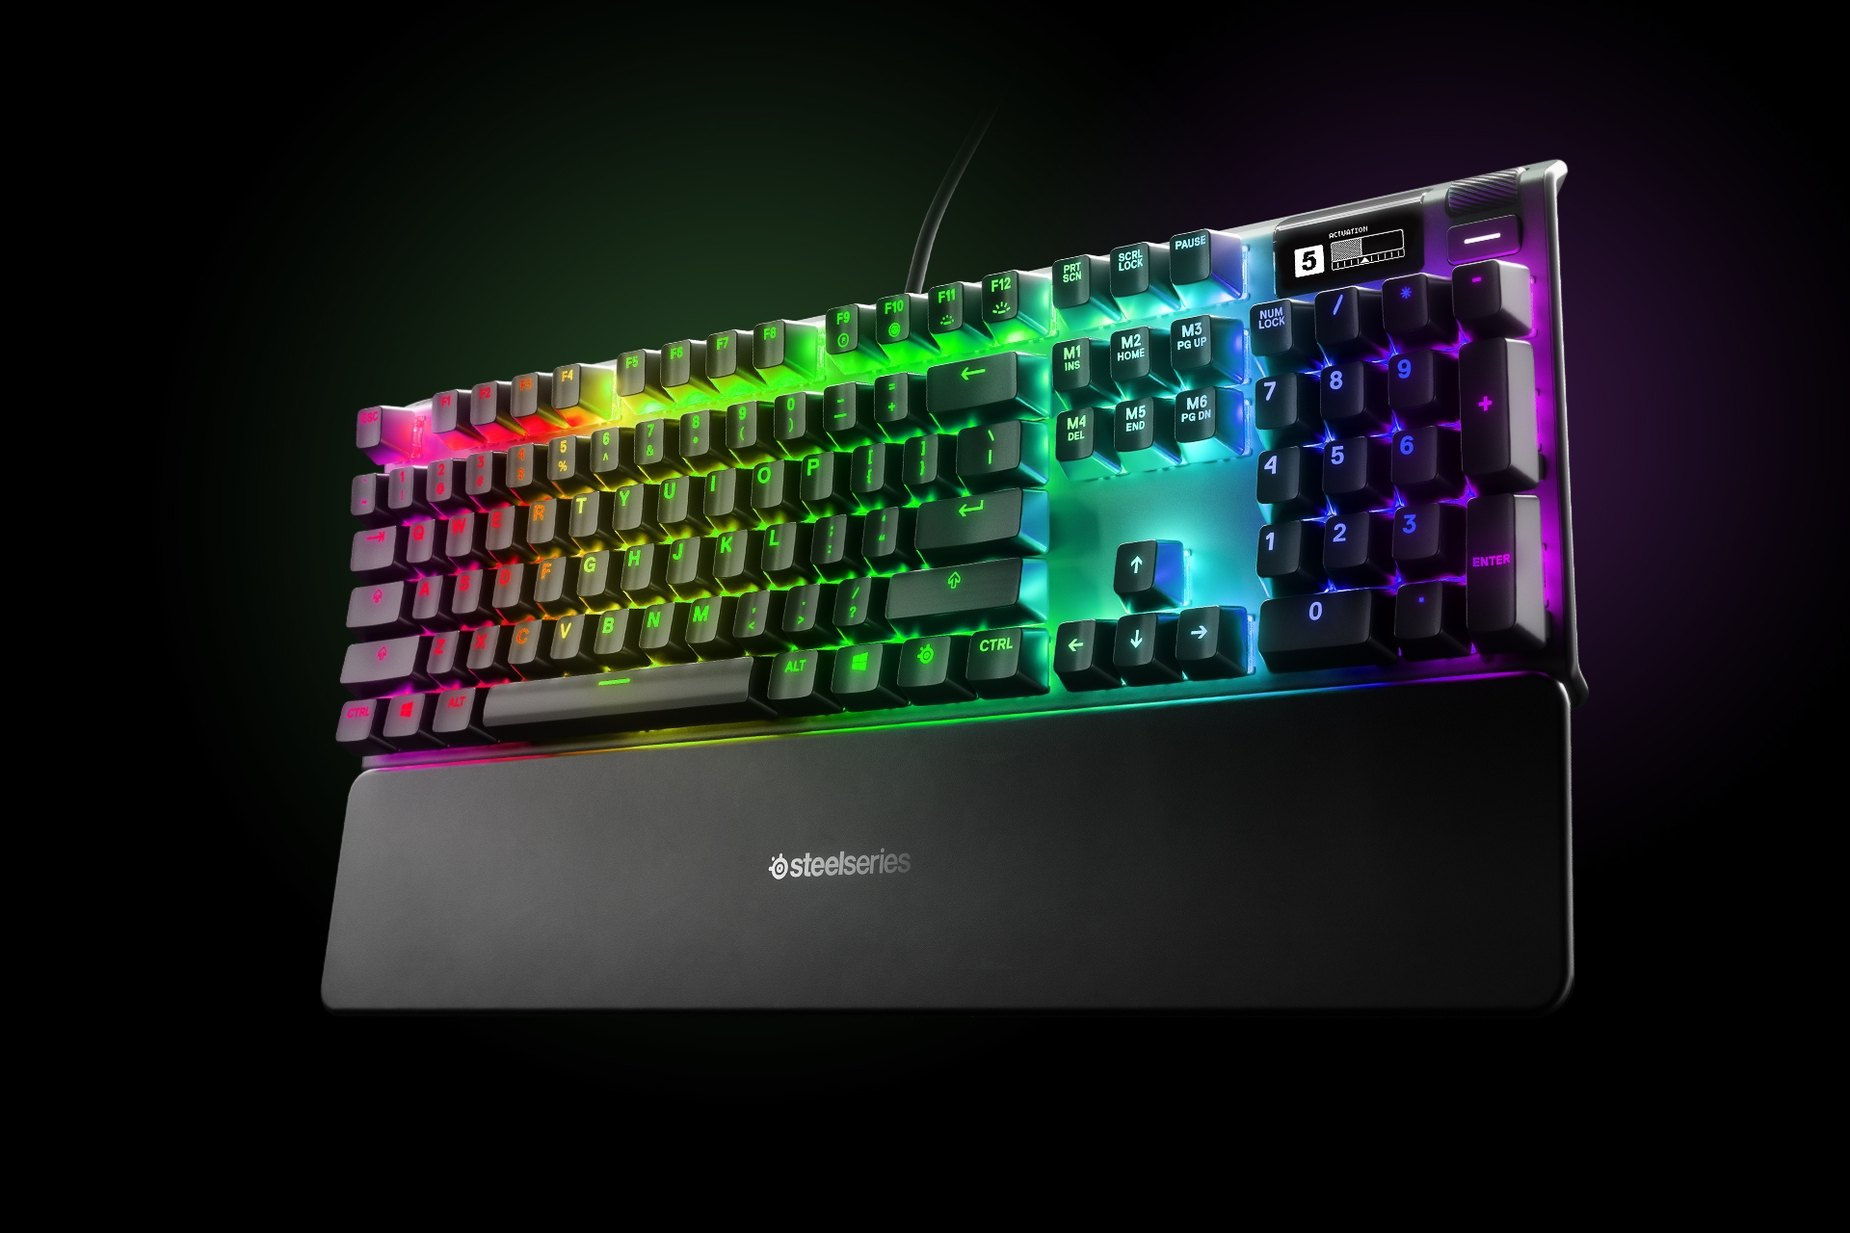 Британский английский - APEX PRO gaming keyboard with the illumination lit up on dark background, also shows the OLED screen and controls used to change settings, switch actuation, and adjust audio